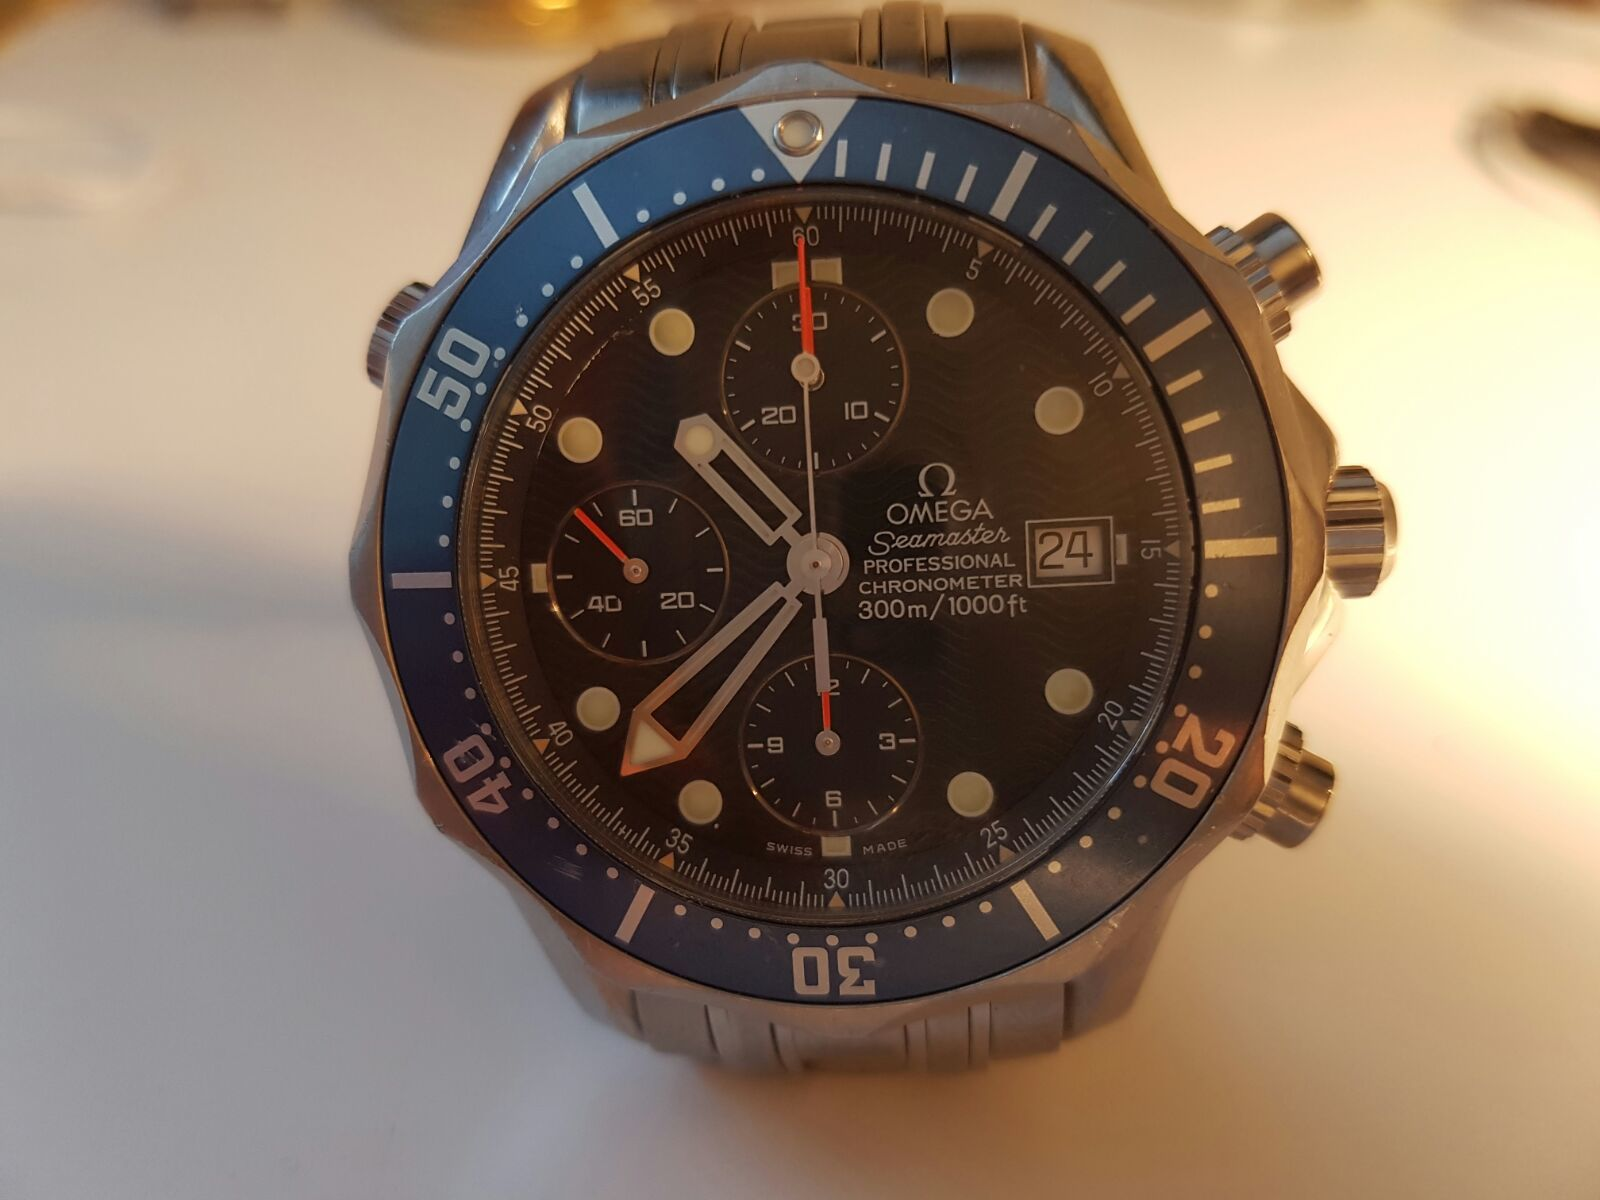 Quality watch repairs